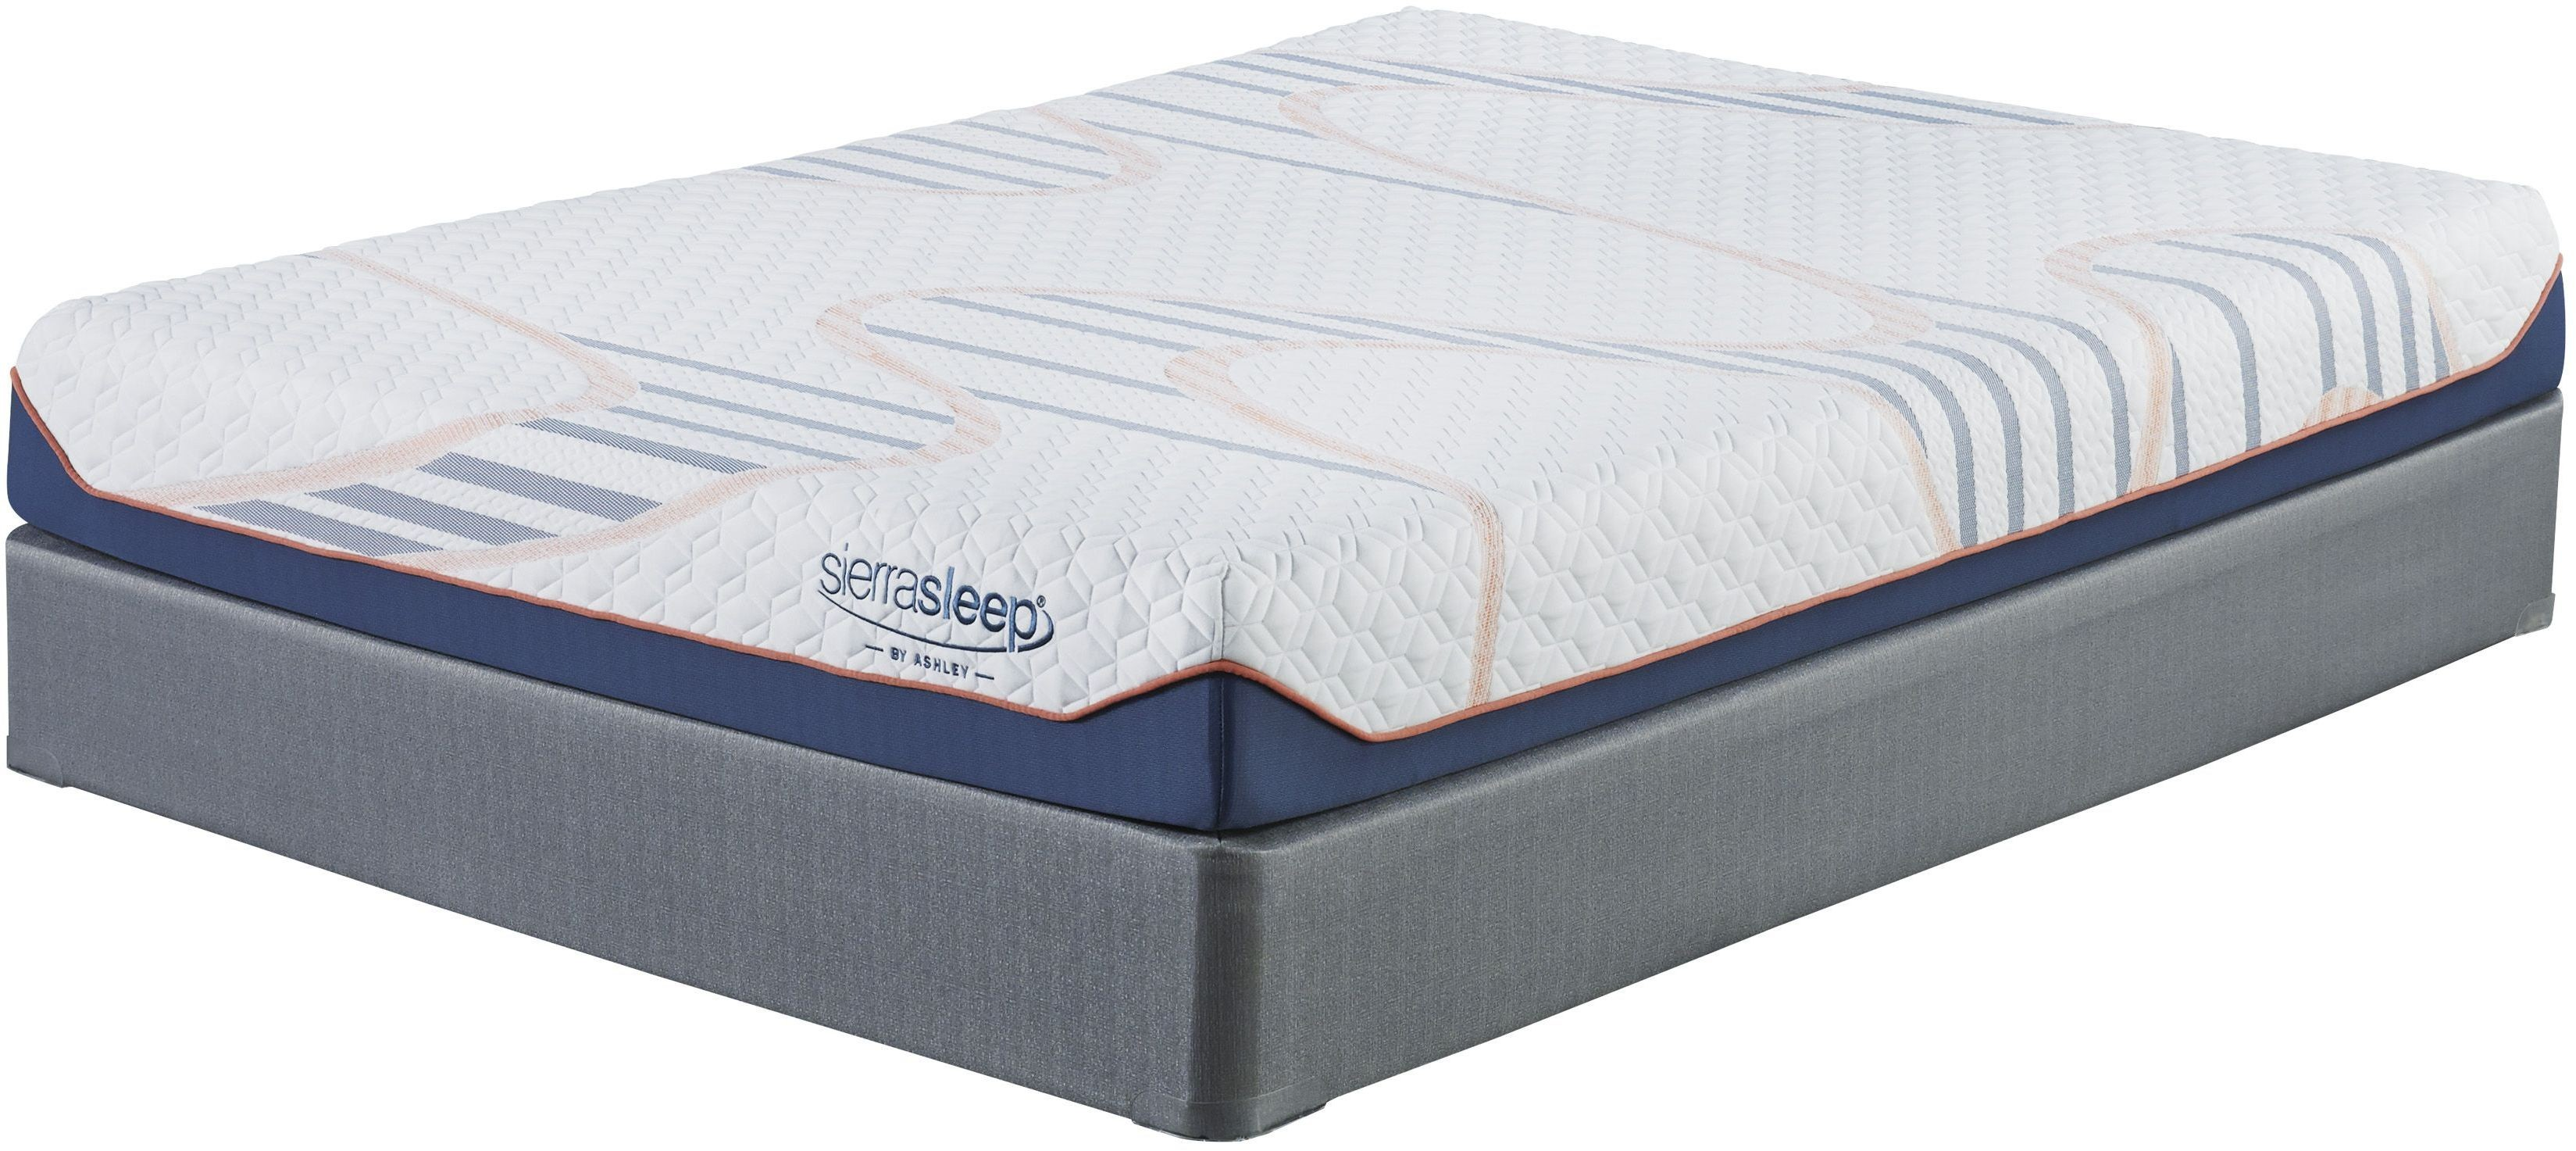 8 inch mygel white twin mattress from ashley coleman furniture. Black Bedroom Furniture Sets. Home Design Ideas